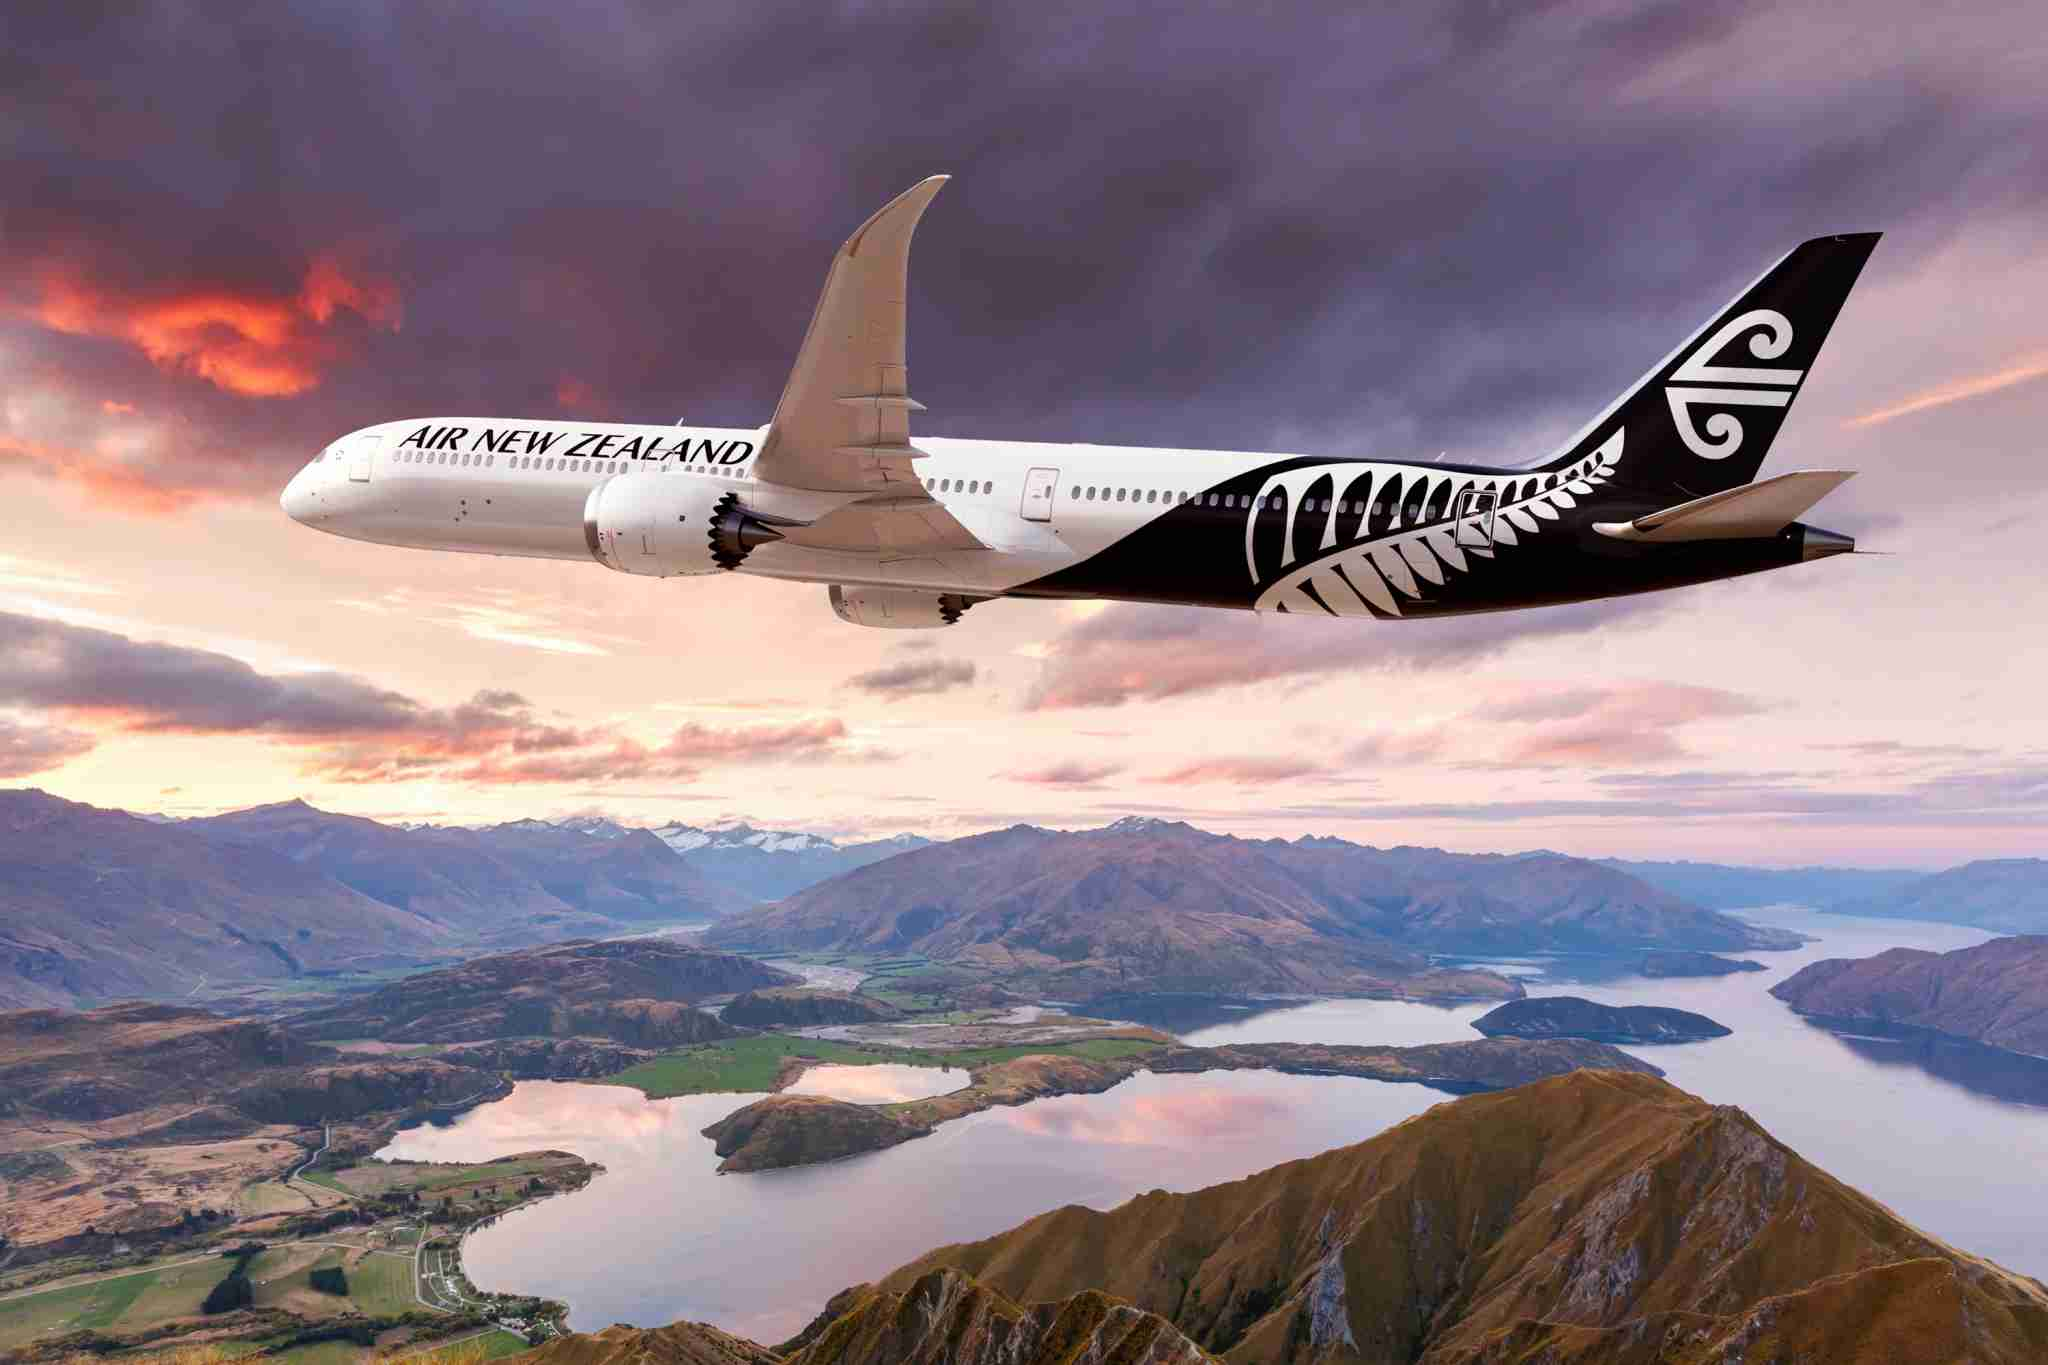 Air New Zealand has yet to announce their new business class seat but when the product makes its debut, it will likely be aboard the airline